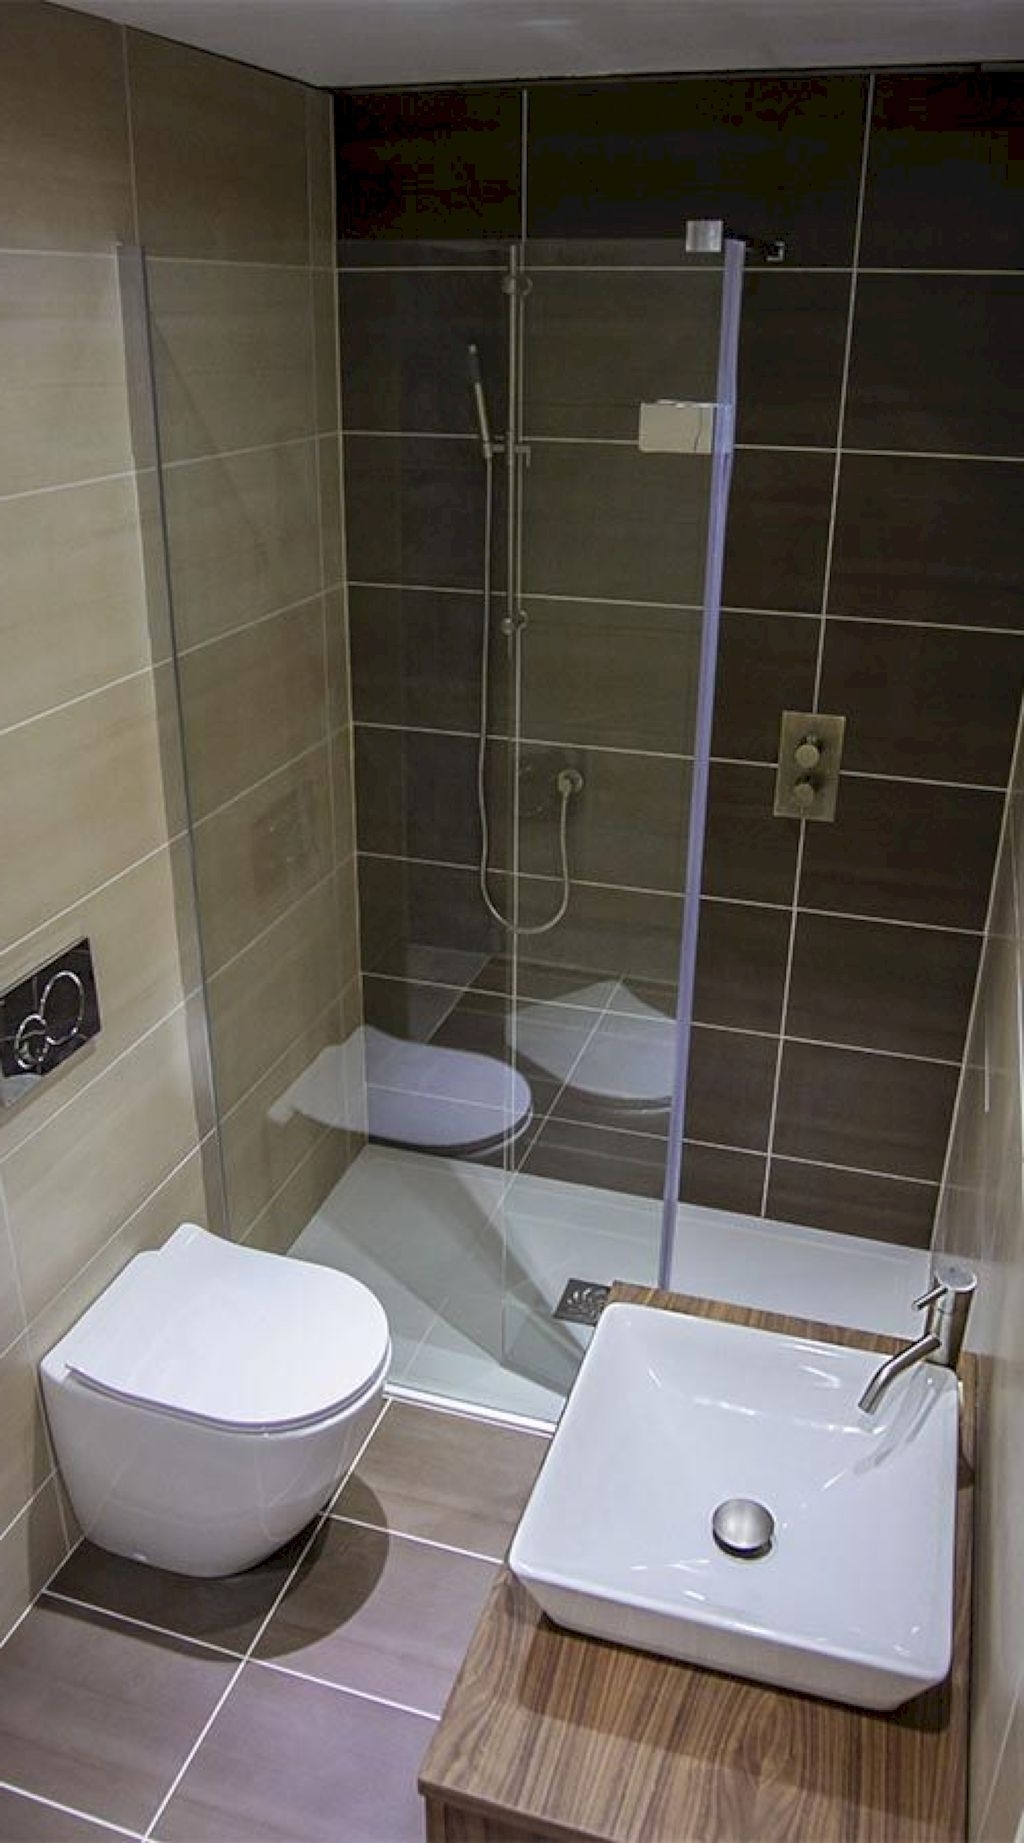 Normal Simple Indian Small Bathroom Designs – Trendecors 10+ 5Ft By 5Ft Bathroom Design Ideas